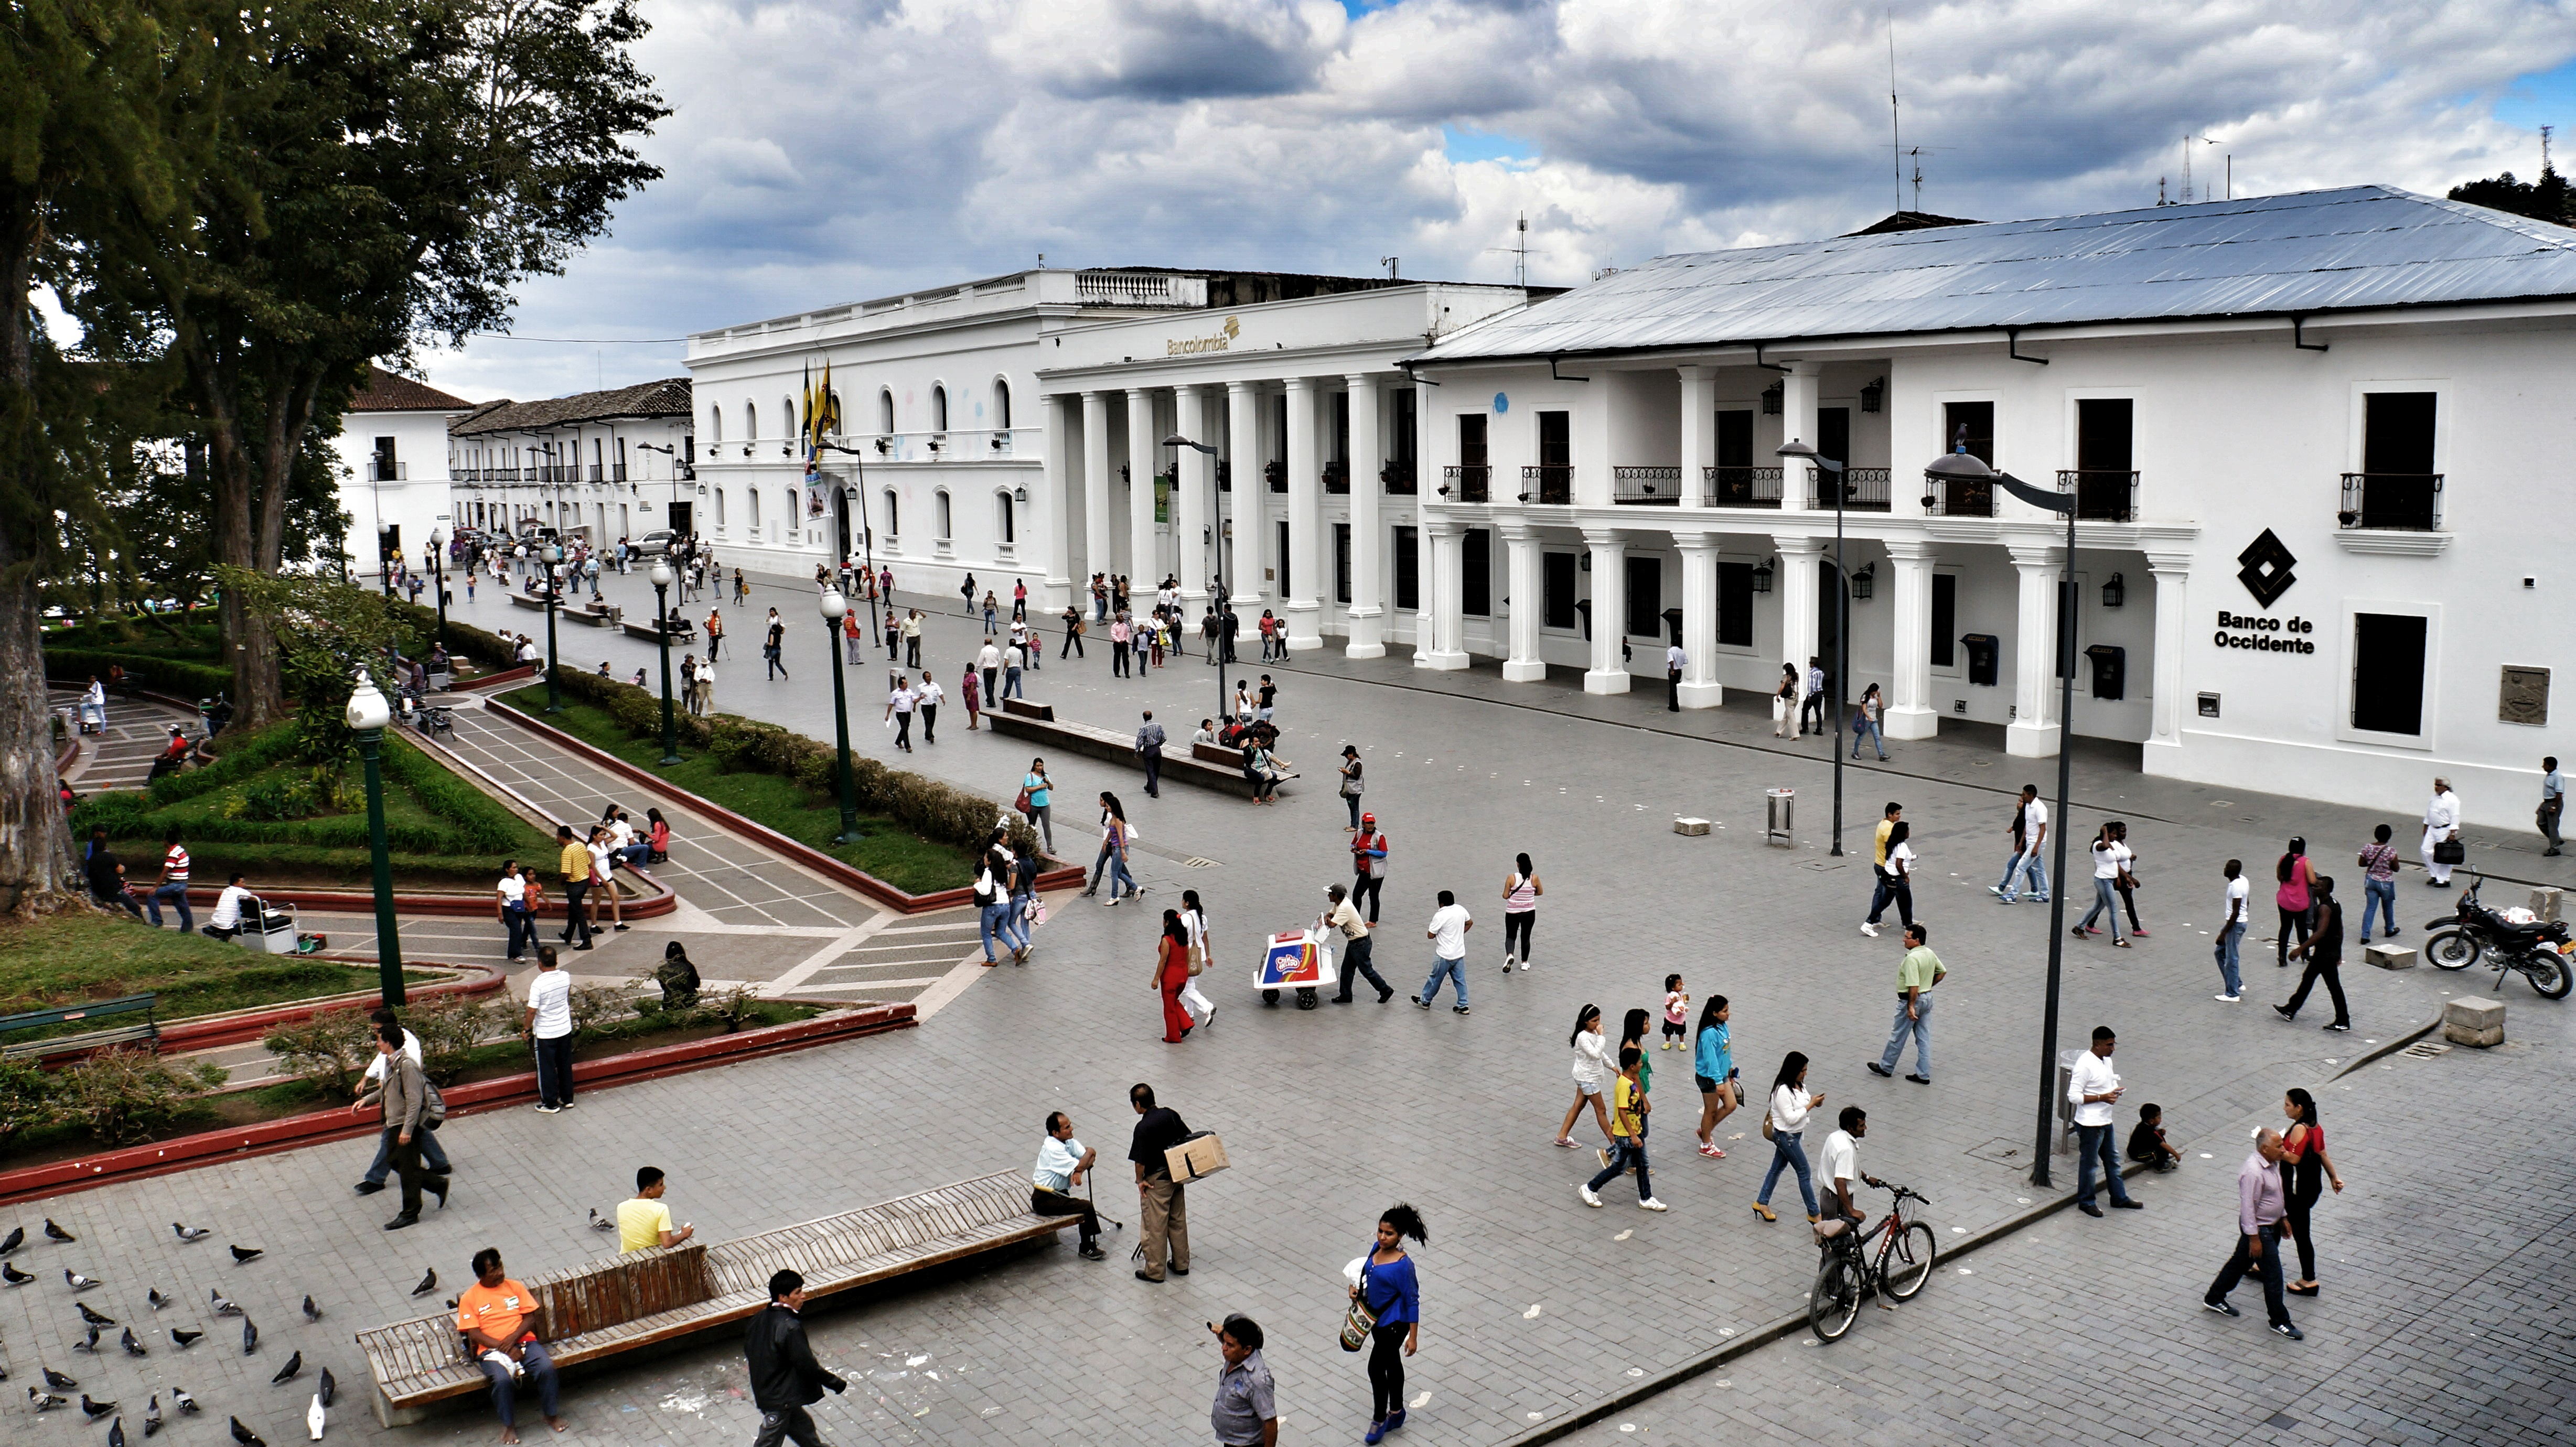 popayan chat rooms Find great savings on 4 stars hotels in popayan at orbitz compare popayan 4 stars hotels with hundreds of  tools which allow you view hotel rooms,.